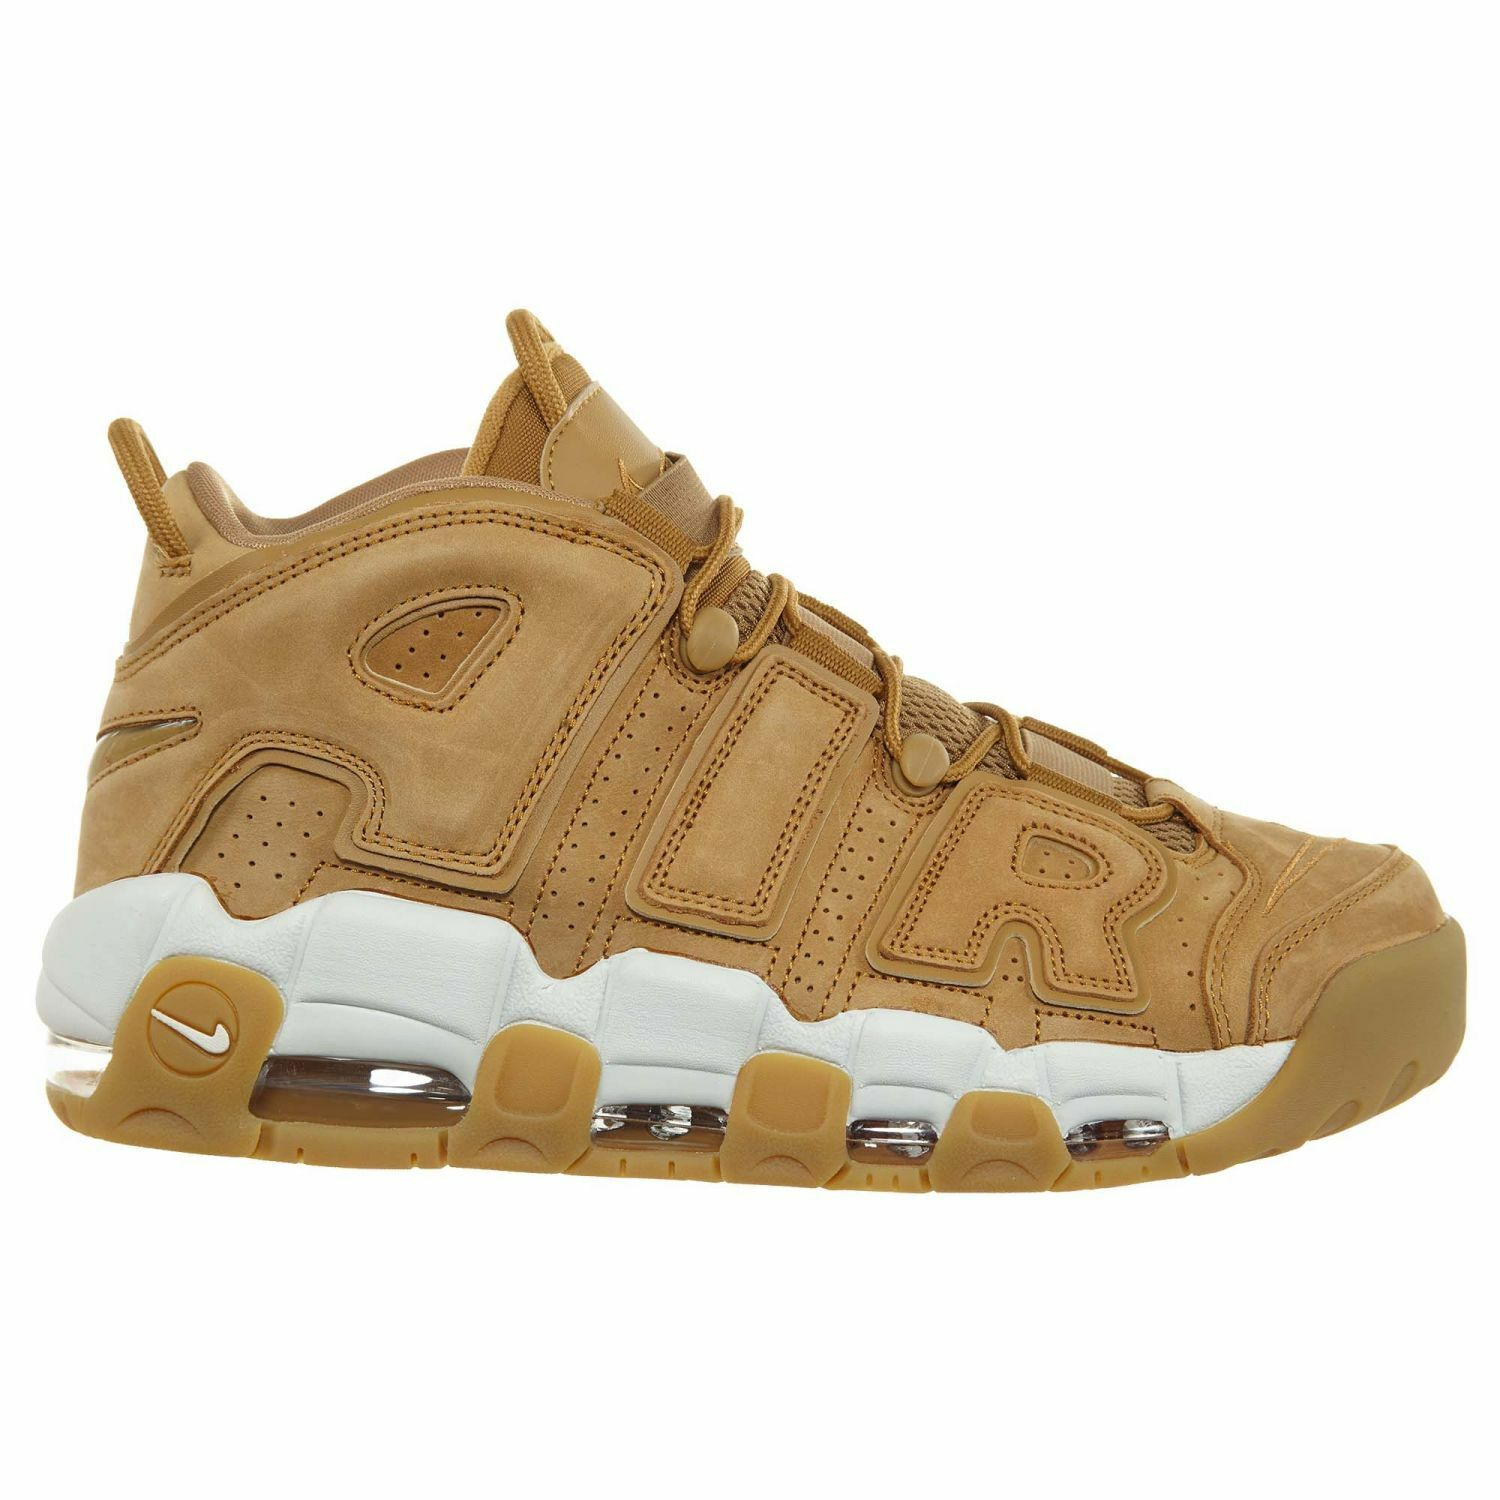 Nike Air More Uptempo '96 Premium Mens AA4060-200 Flax Gum Suede shoes Size 10